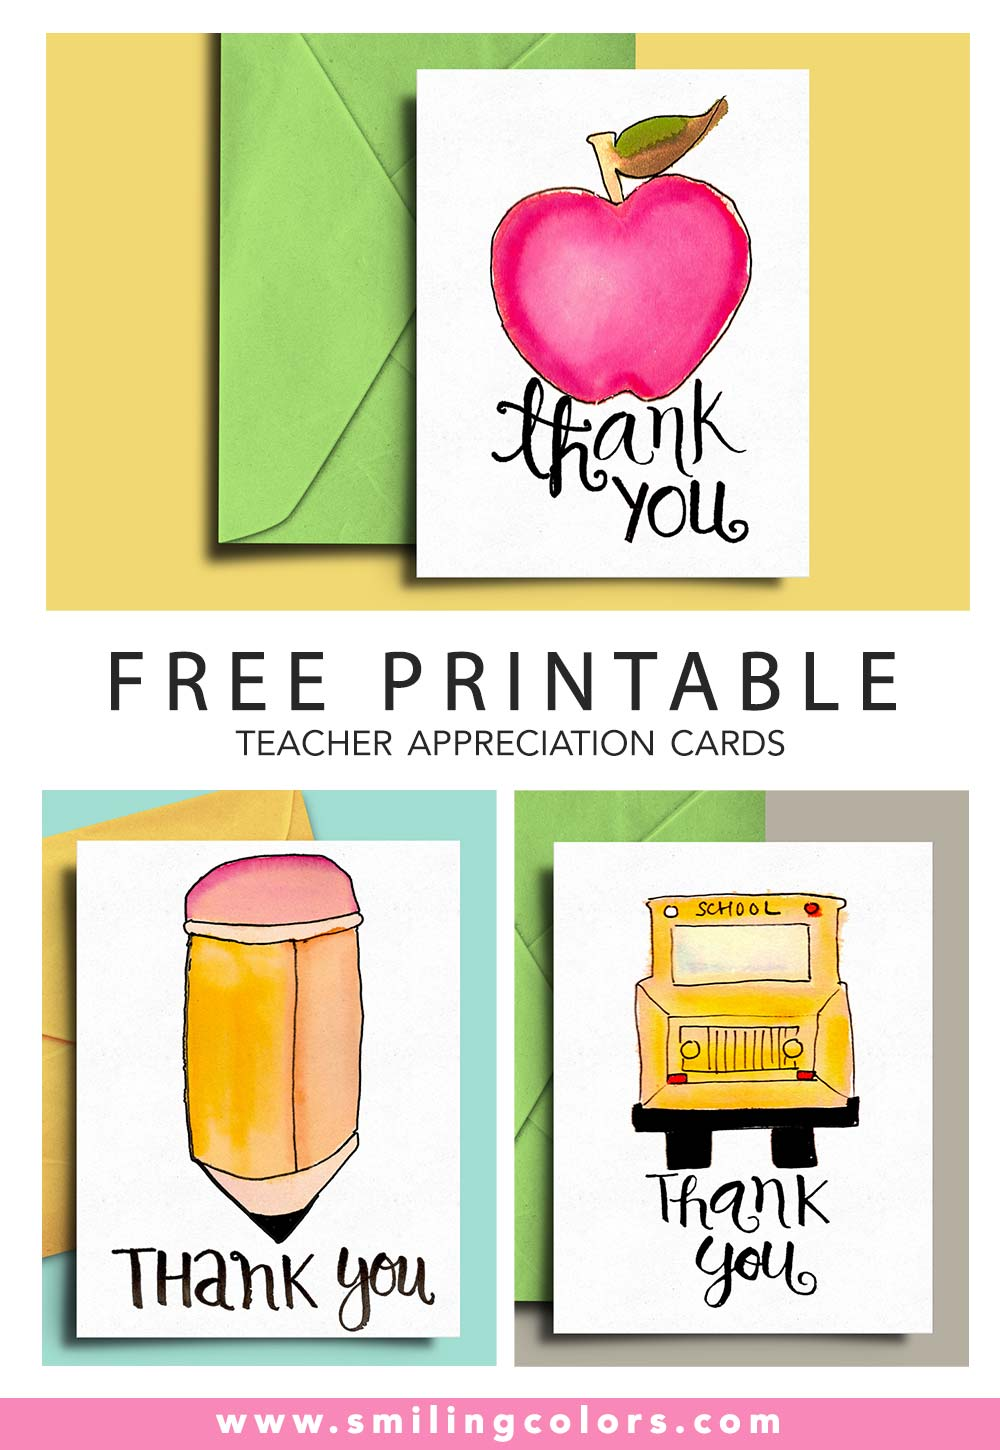 Free Printable teacher appreciation cards - Smiling Colors